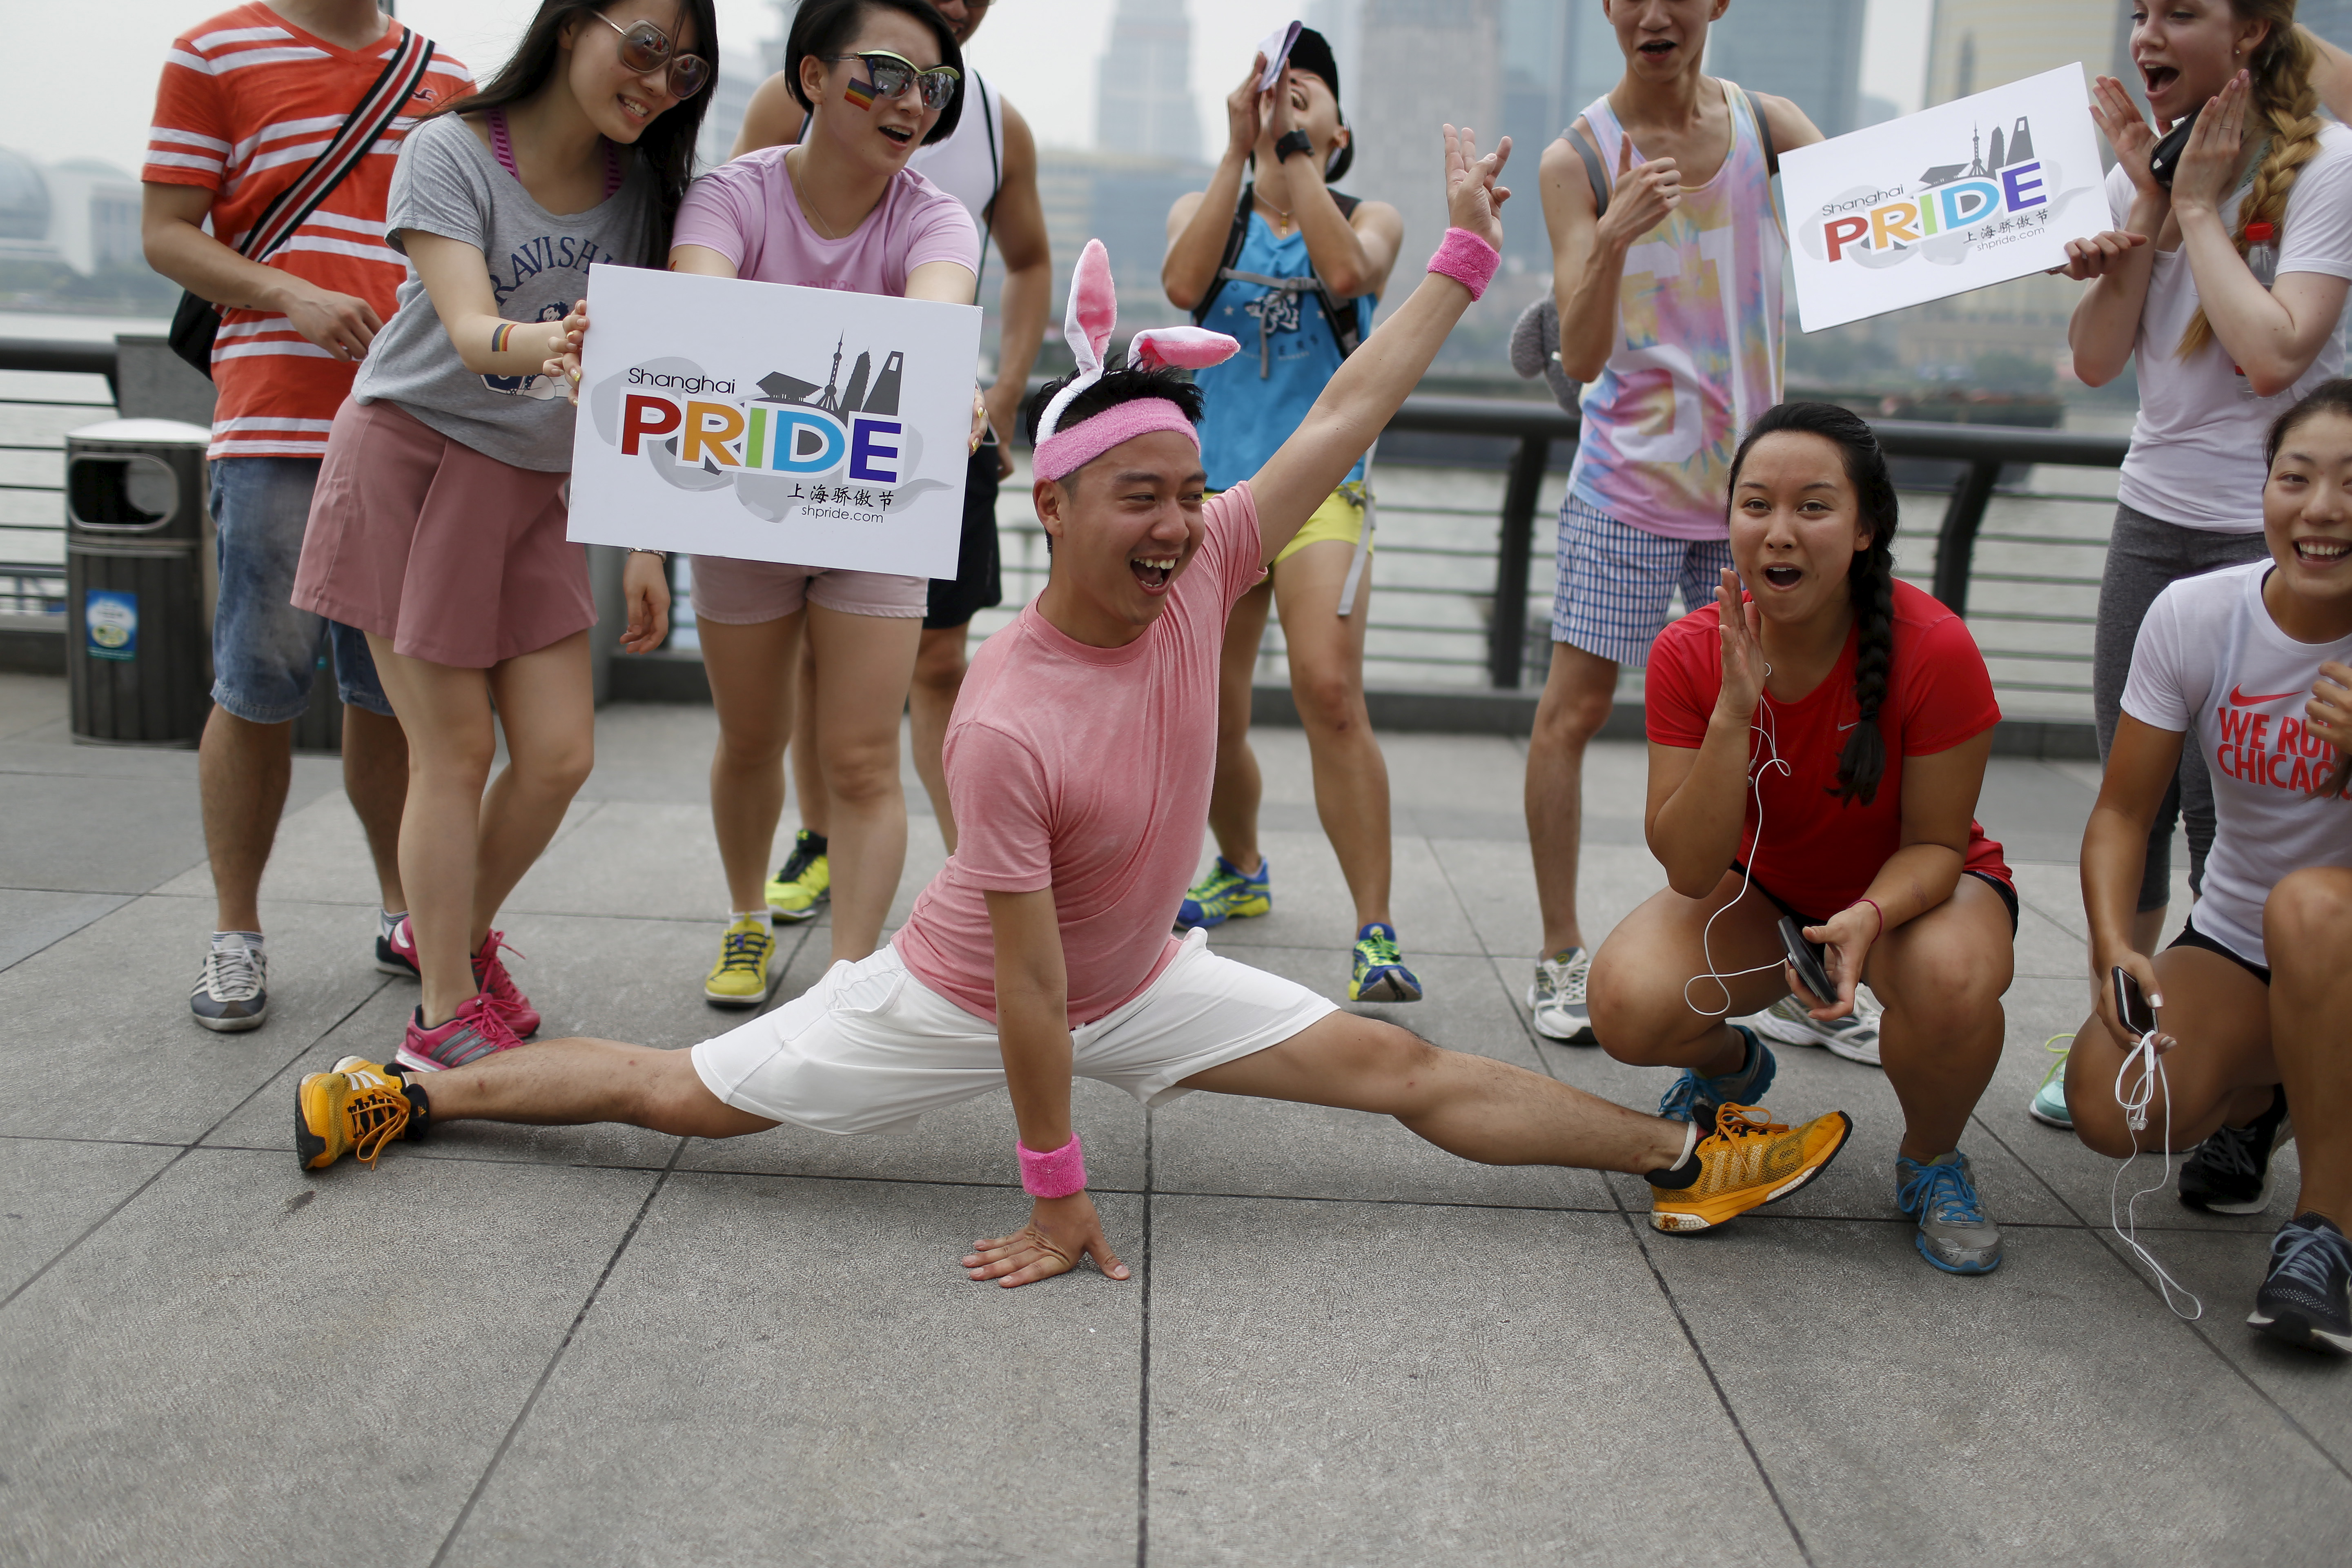 Participants take part in Pride Run, an event at the ShanghaiPRIDE LGBTQ celebration in Shanghai, China on June 13, 2015. Photo by Aly Song/Reuters